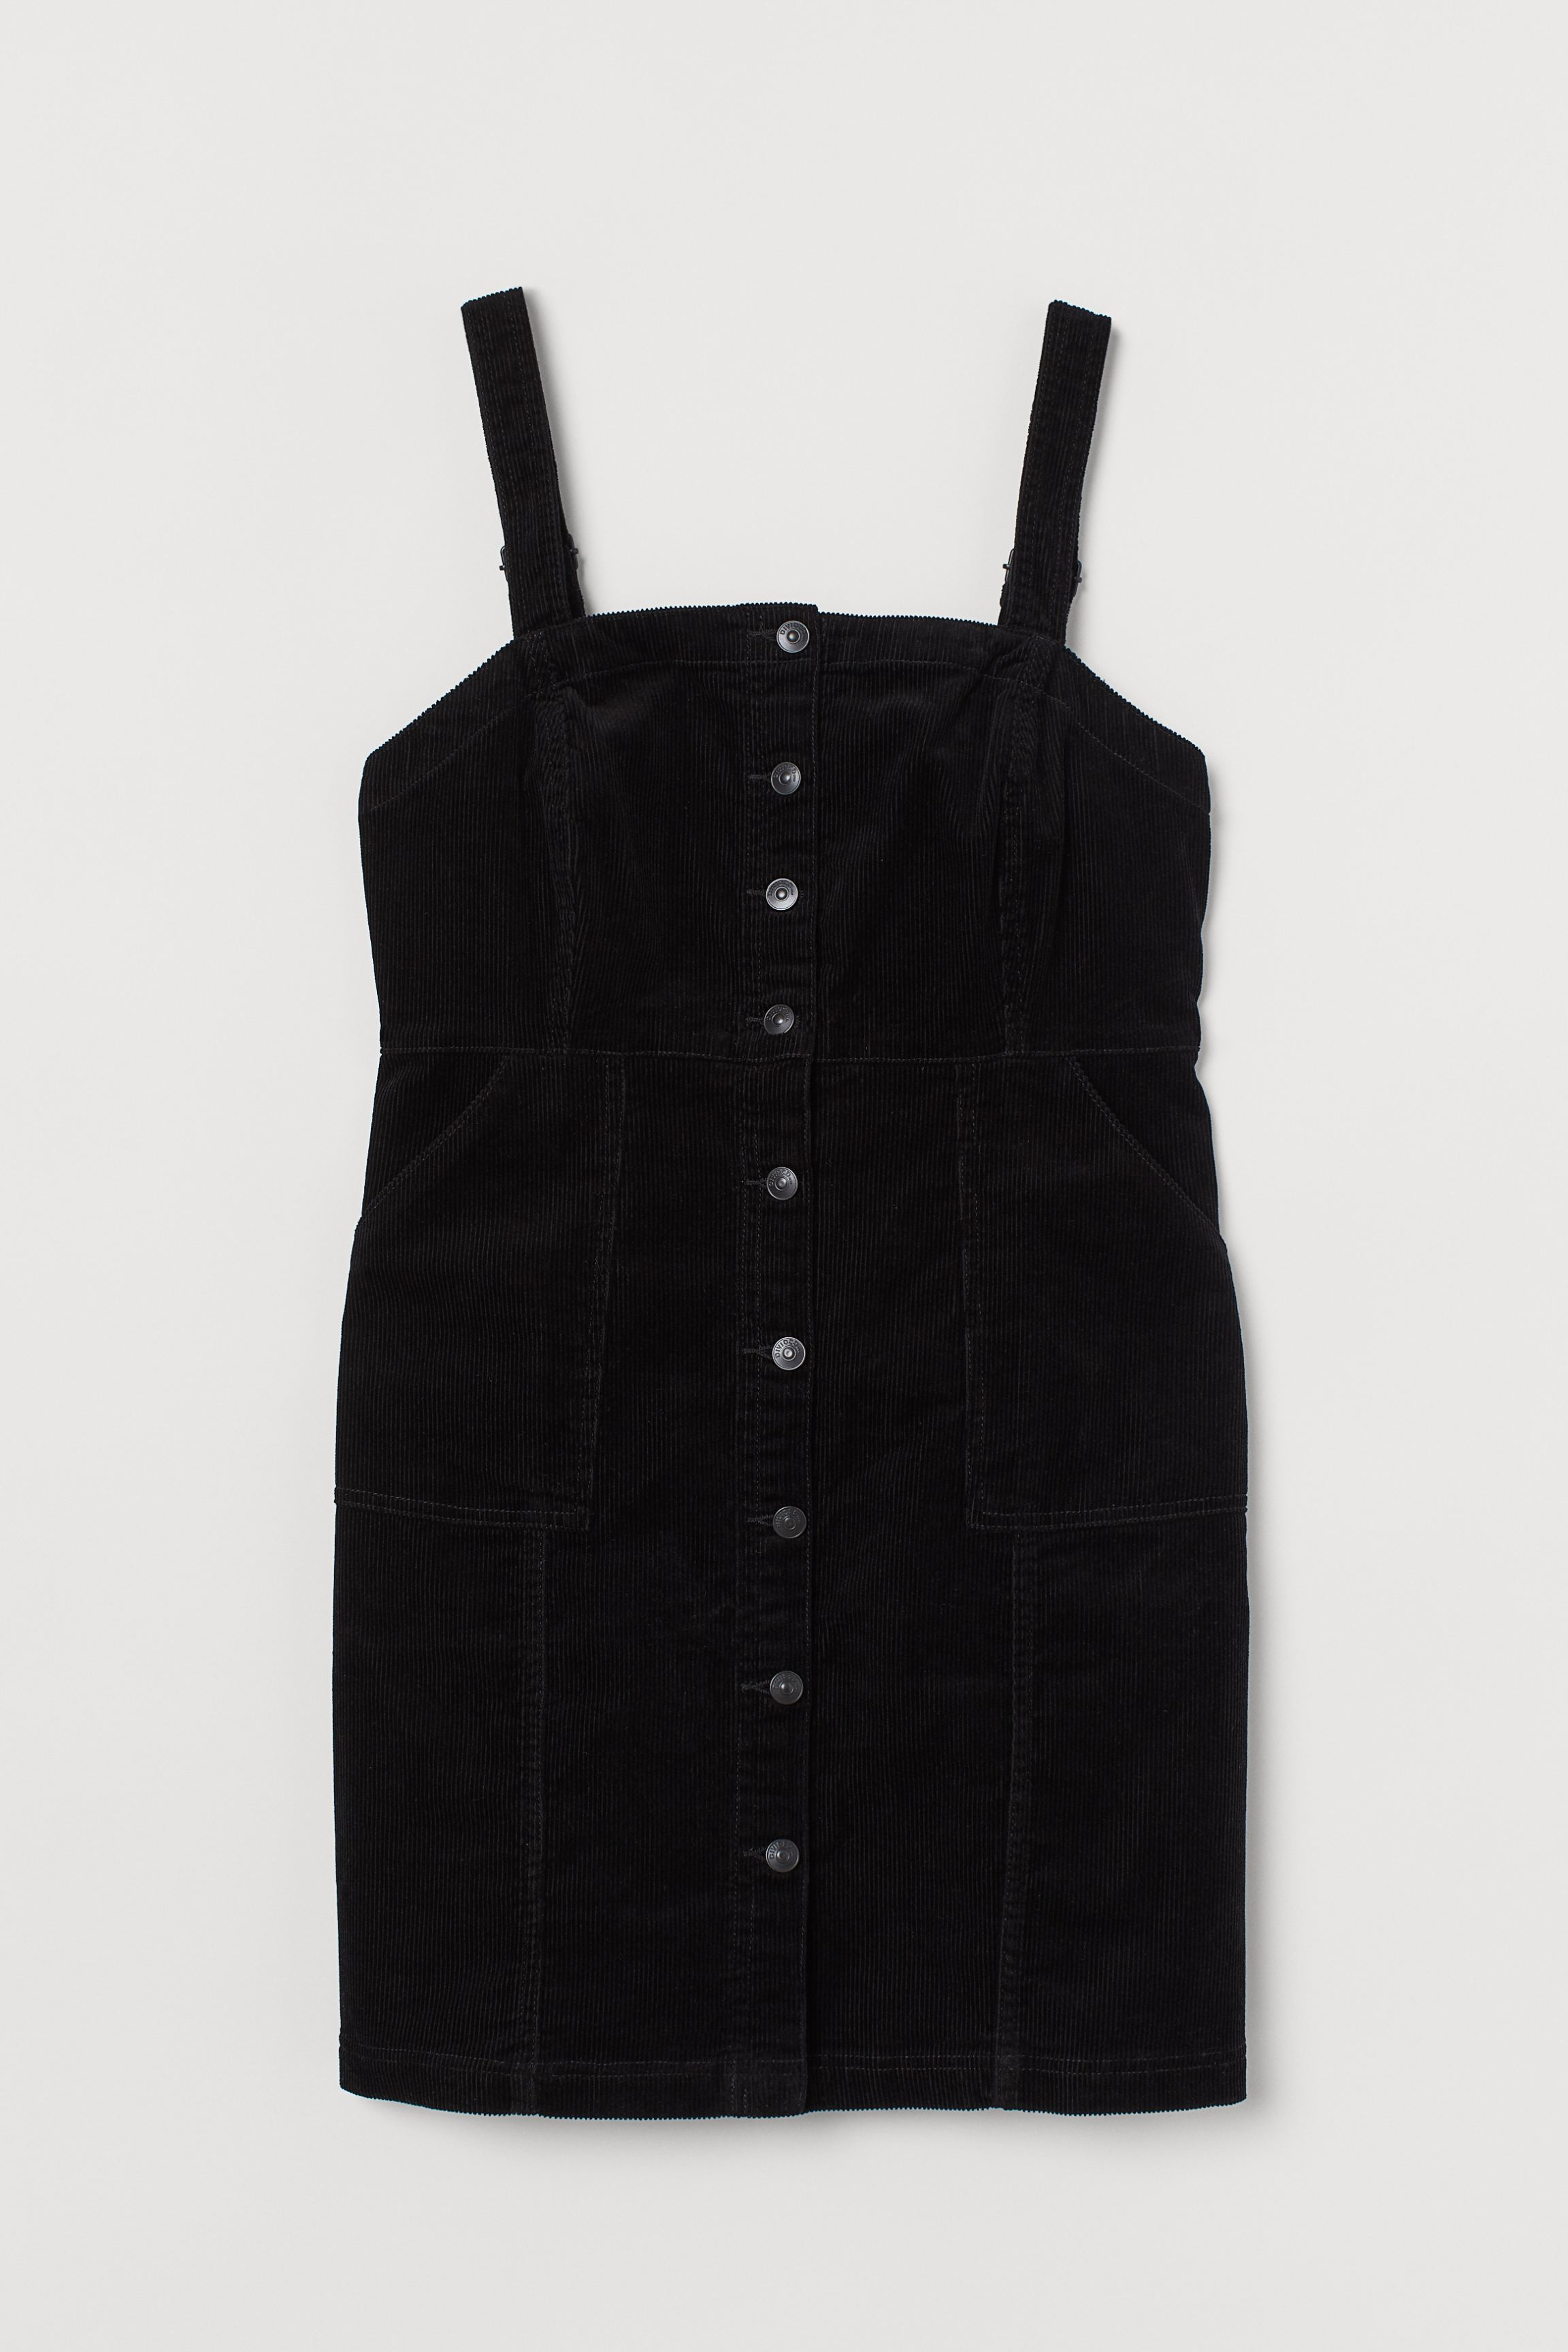 H&M+ Overall Dress